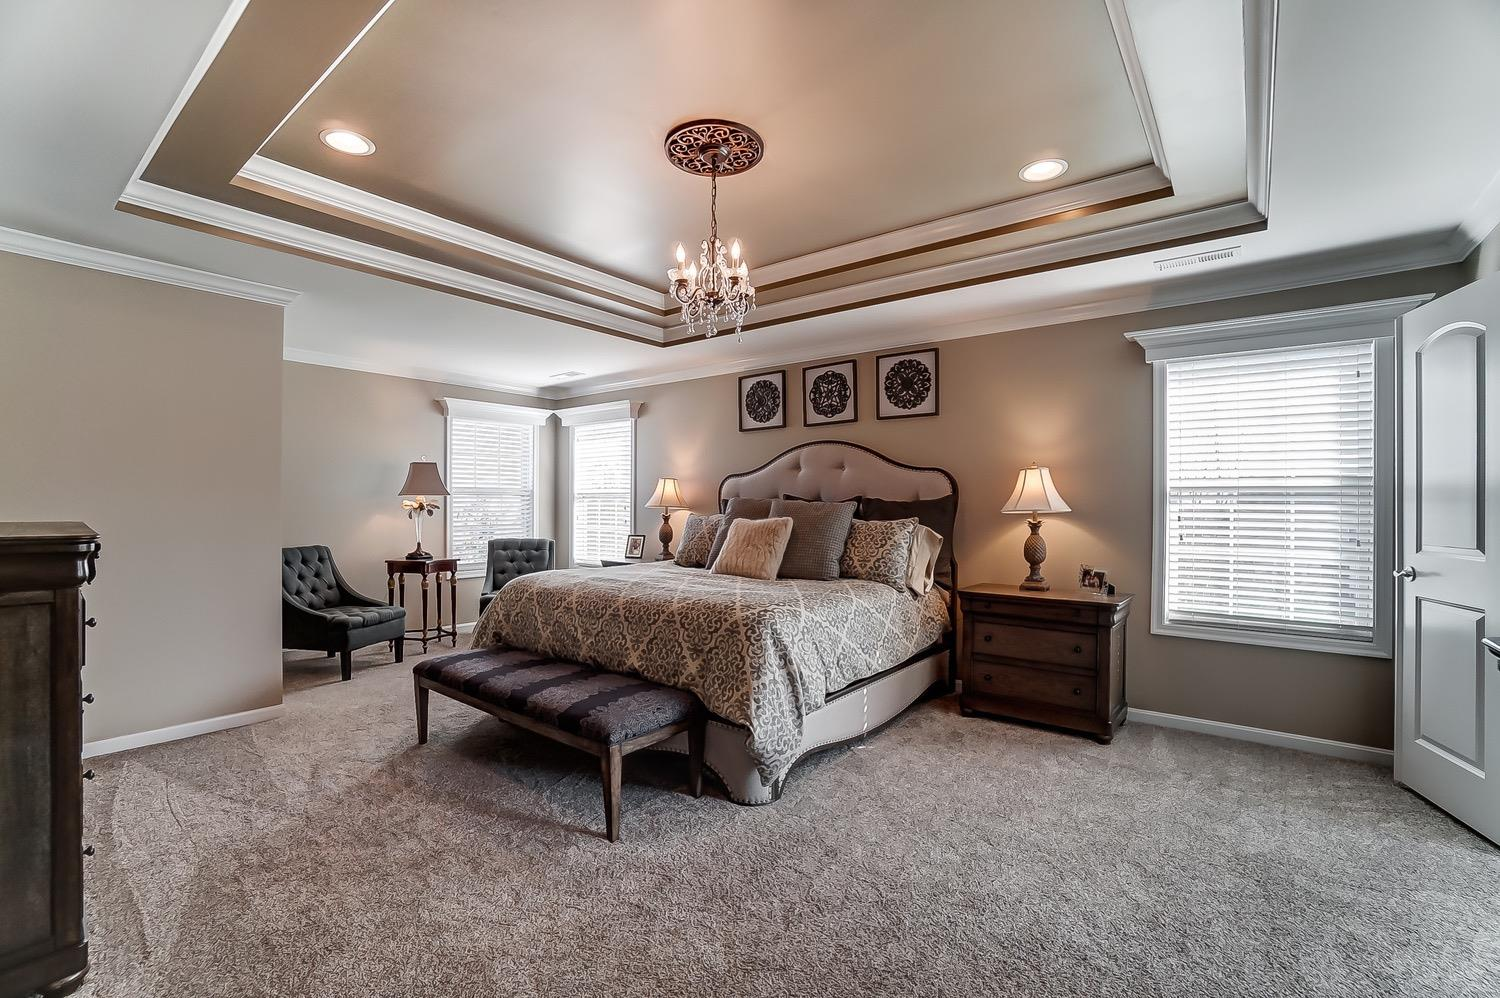 Large master suite with sitting area, double tray ceiling and chandelier.